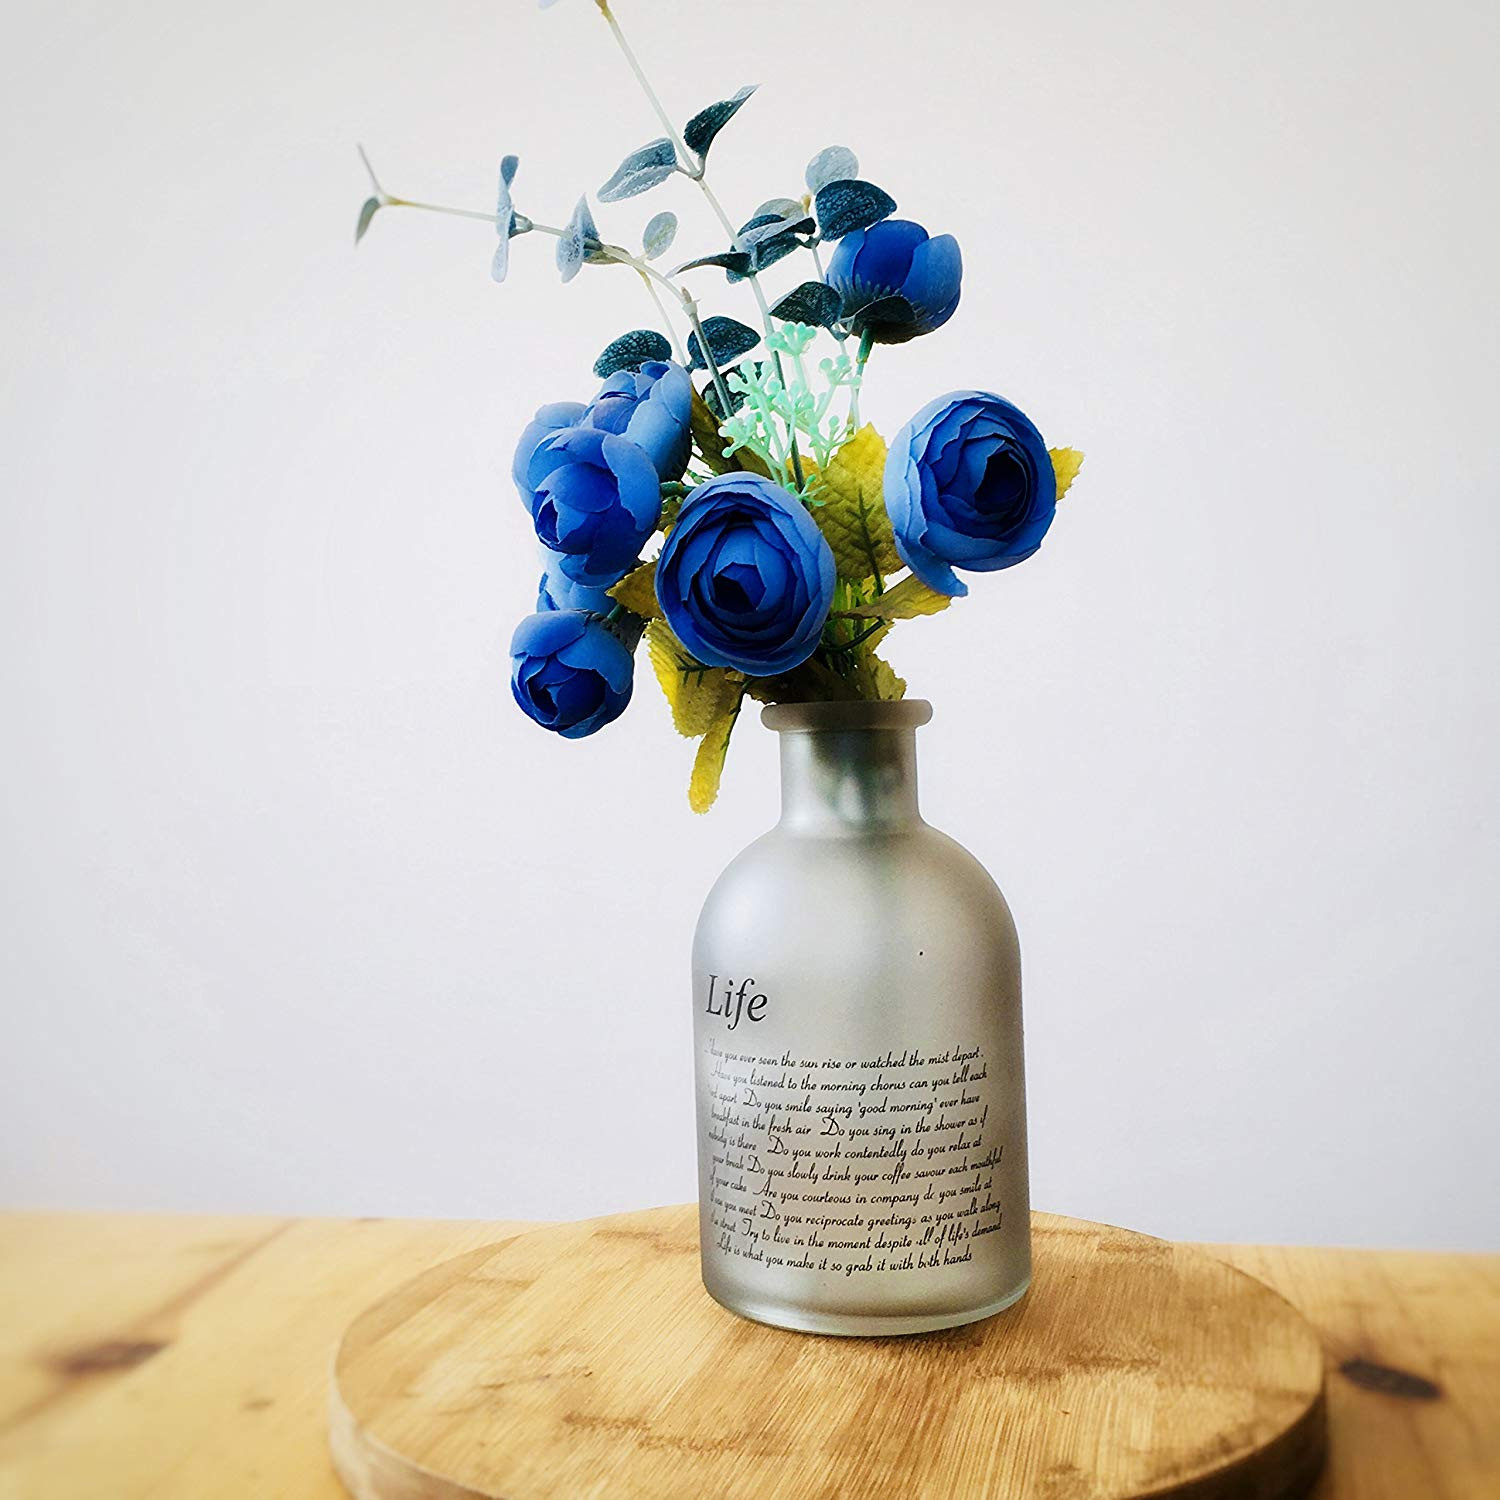 Vintage Bubble Glass Vase for Sale Of Amazon Com Flowersea Decorative Frosted Glass Bottle Bud Vases for Inside Amazon Com Flowersea Decorative Frosted Glass Bottle Bud Vases for Flowers Modern Design with Life Poem Laurel Clear Home Kitchen